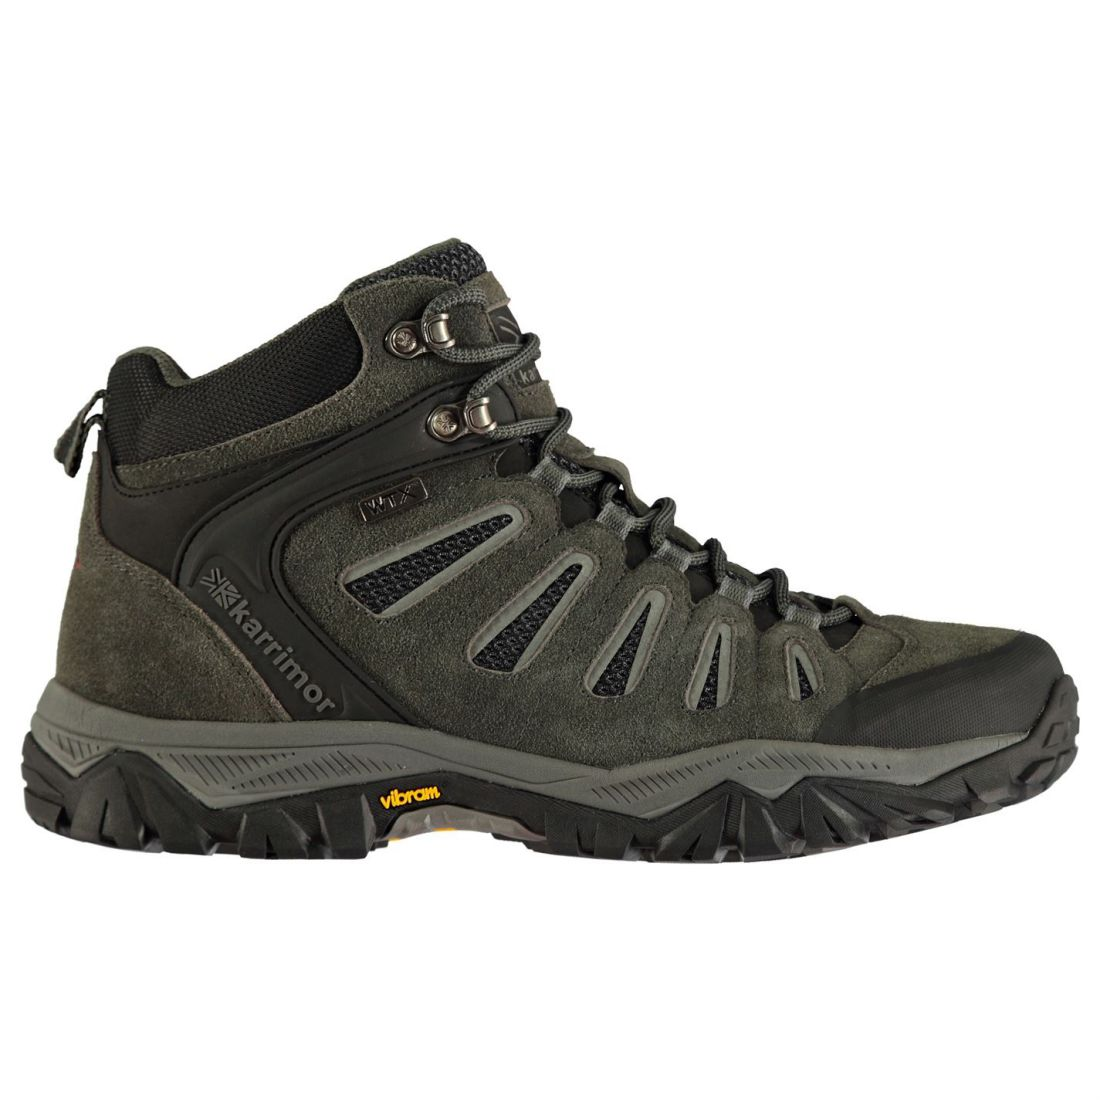 Karrimor Mens Wildcat Mid  Walking Boots Lace Up Breathable Padded Ankle Collar  order now with big discount & free delivery